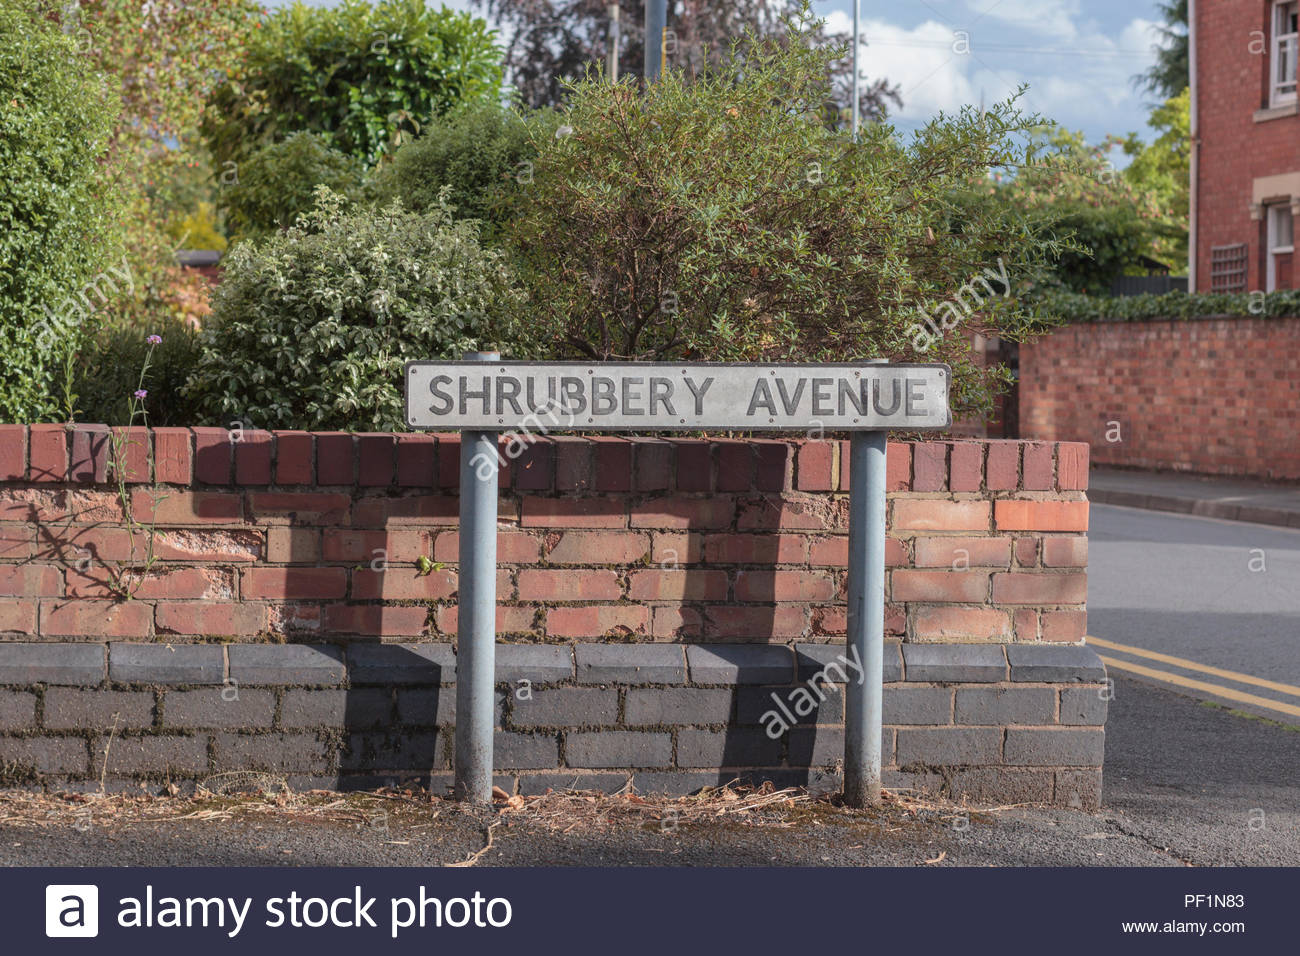 Shrubbery Avenue sign in the city Worcester, England. - Stock Image